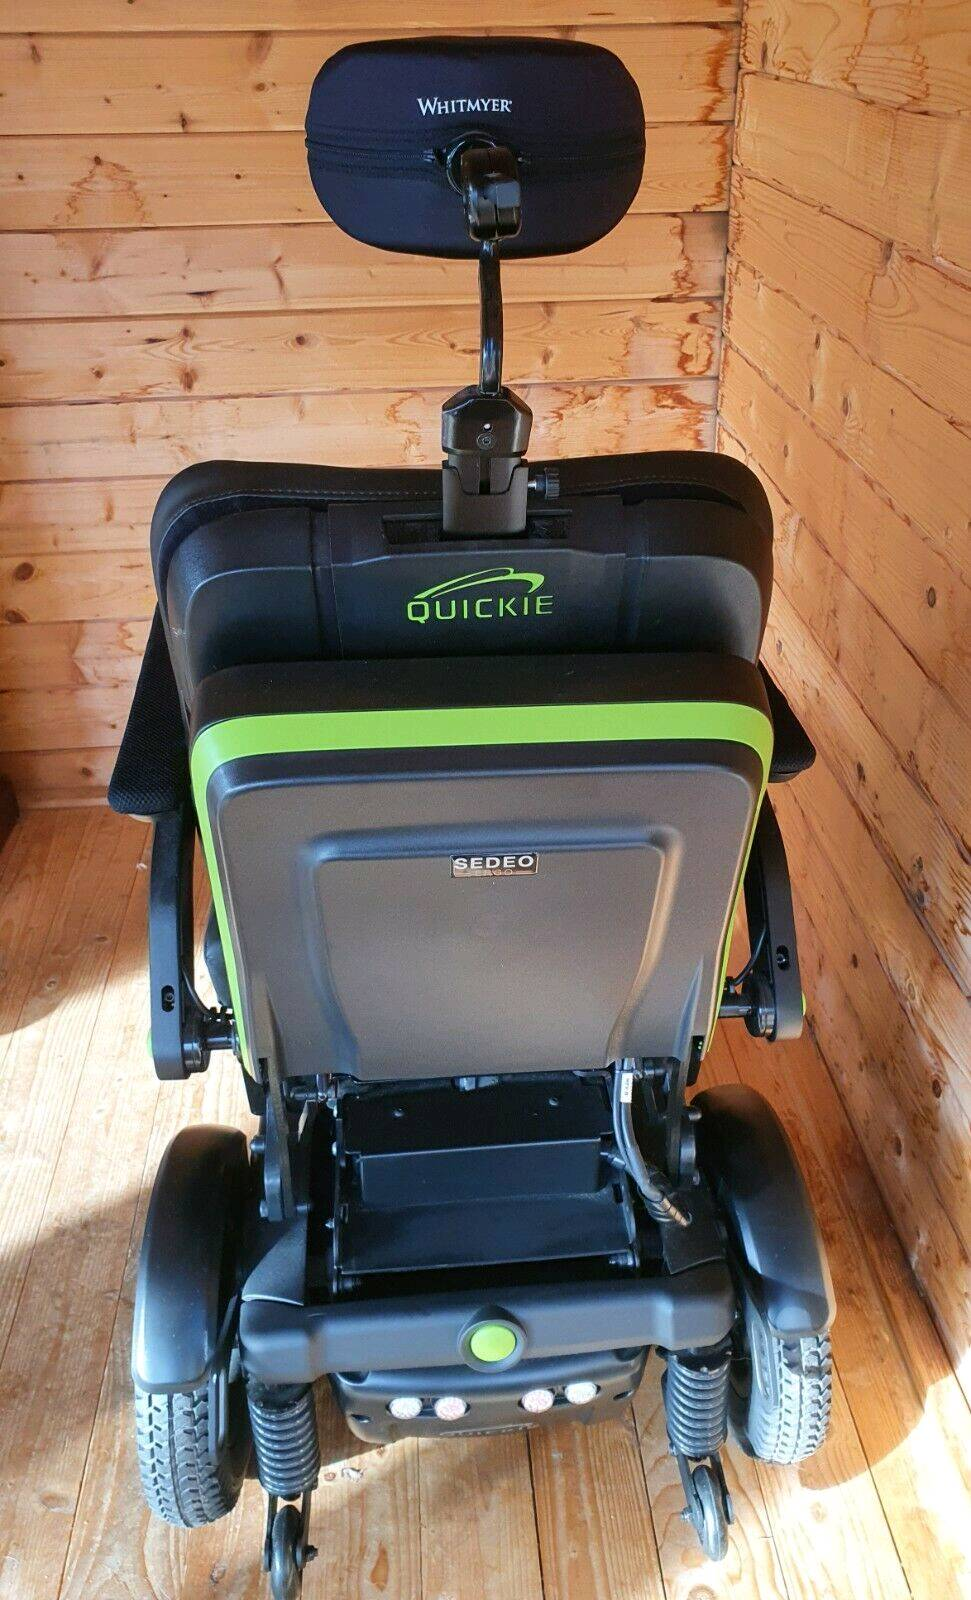 Private: Quickie Q700-UP F SEDEO ERGO Standing Wheelchair